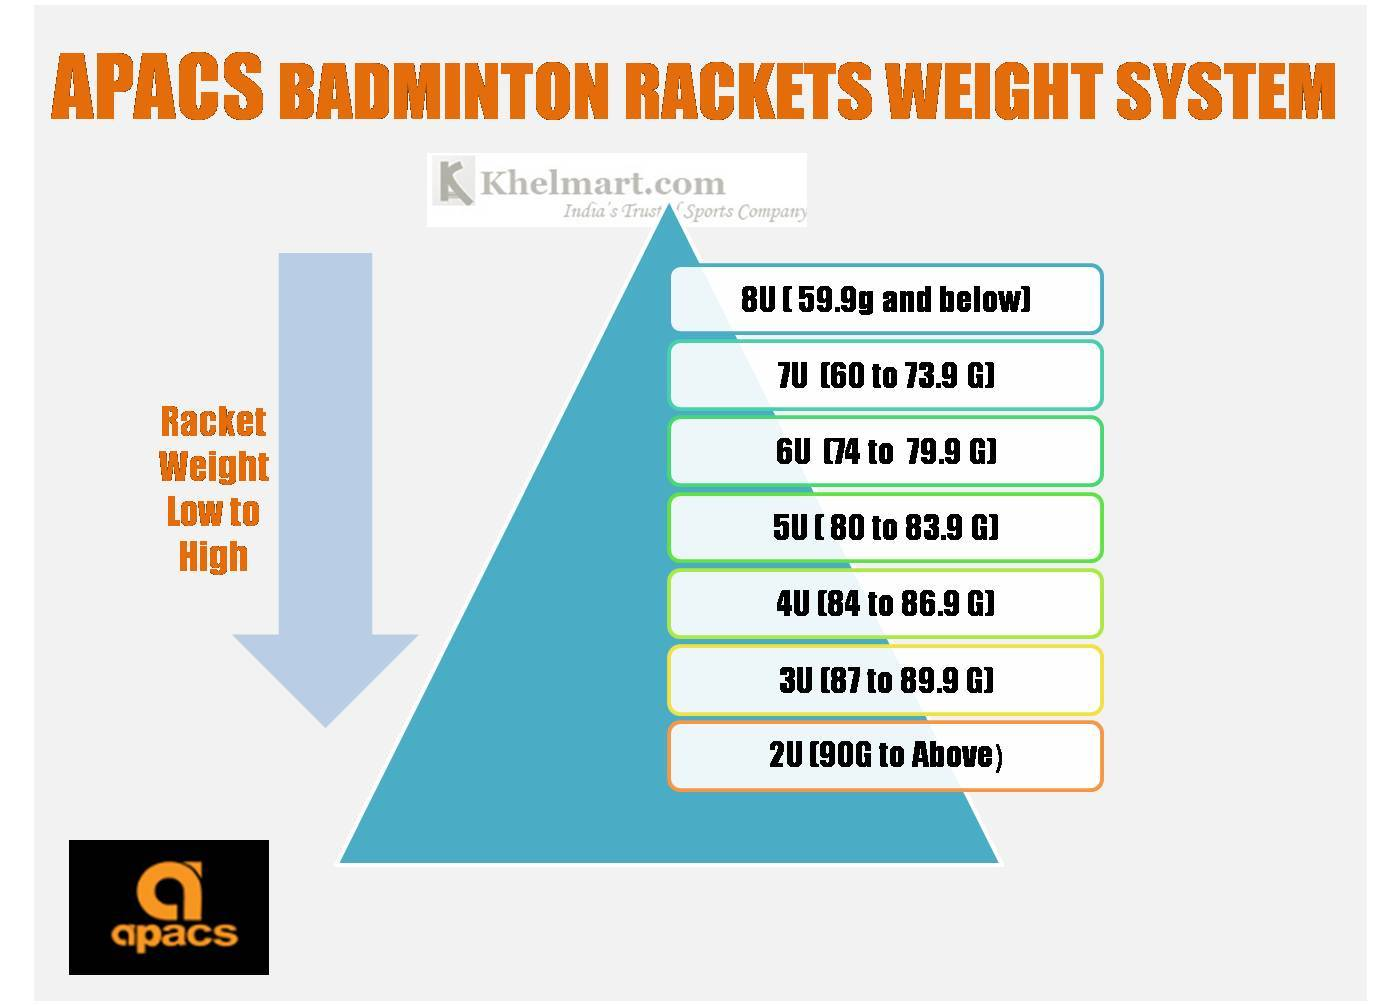 Apacs_Badminton_racket_Weight_Standard_Khelmart